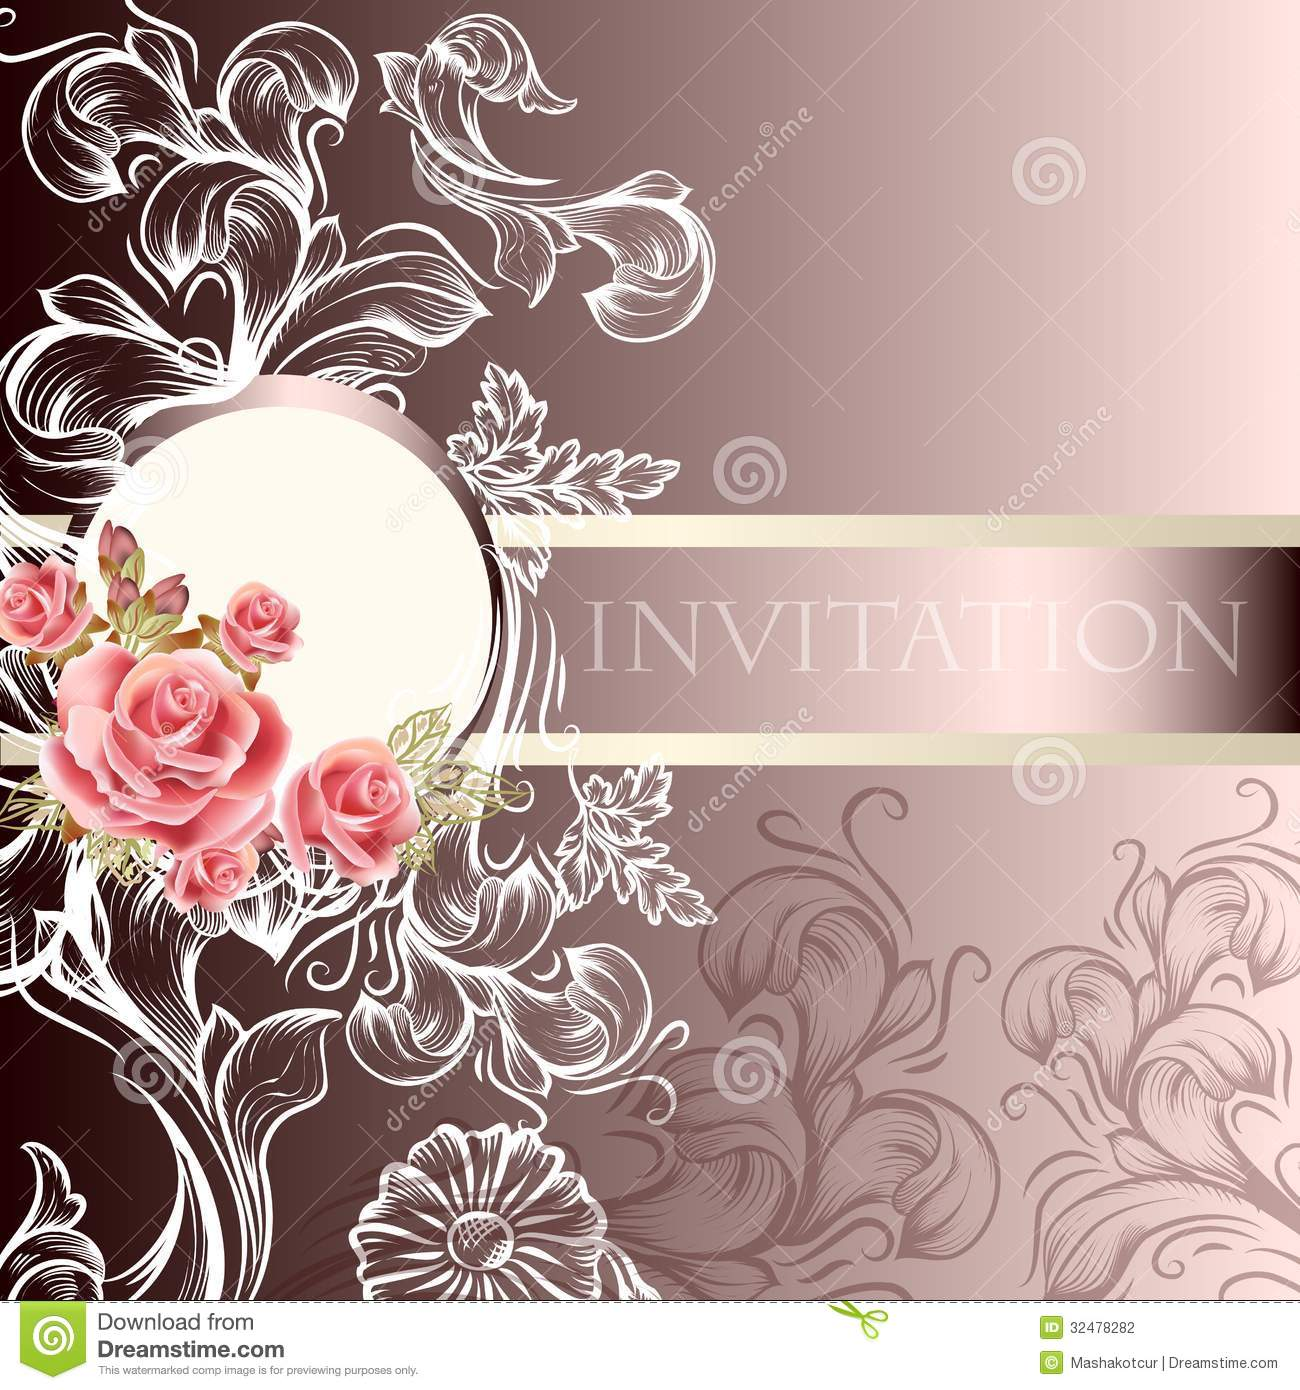 stock vector elegant wedding invitation elegant wedding invites Elegant Wedding Invitation Preview Save to a lightbox